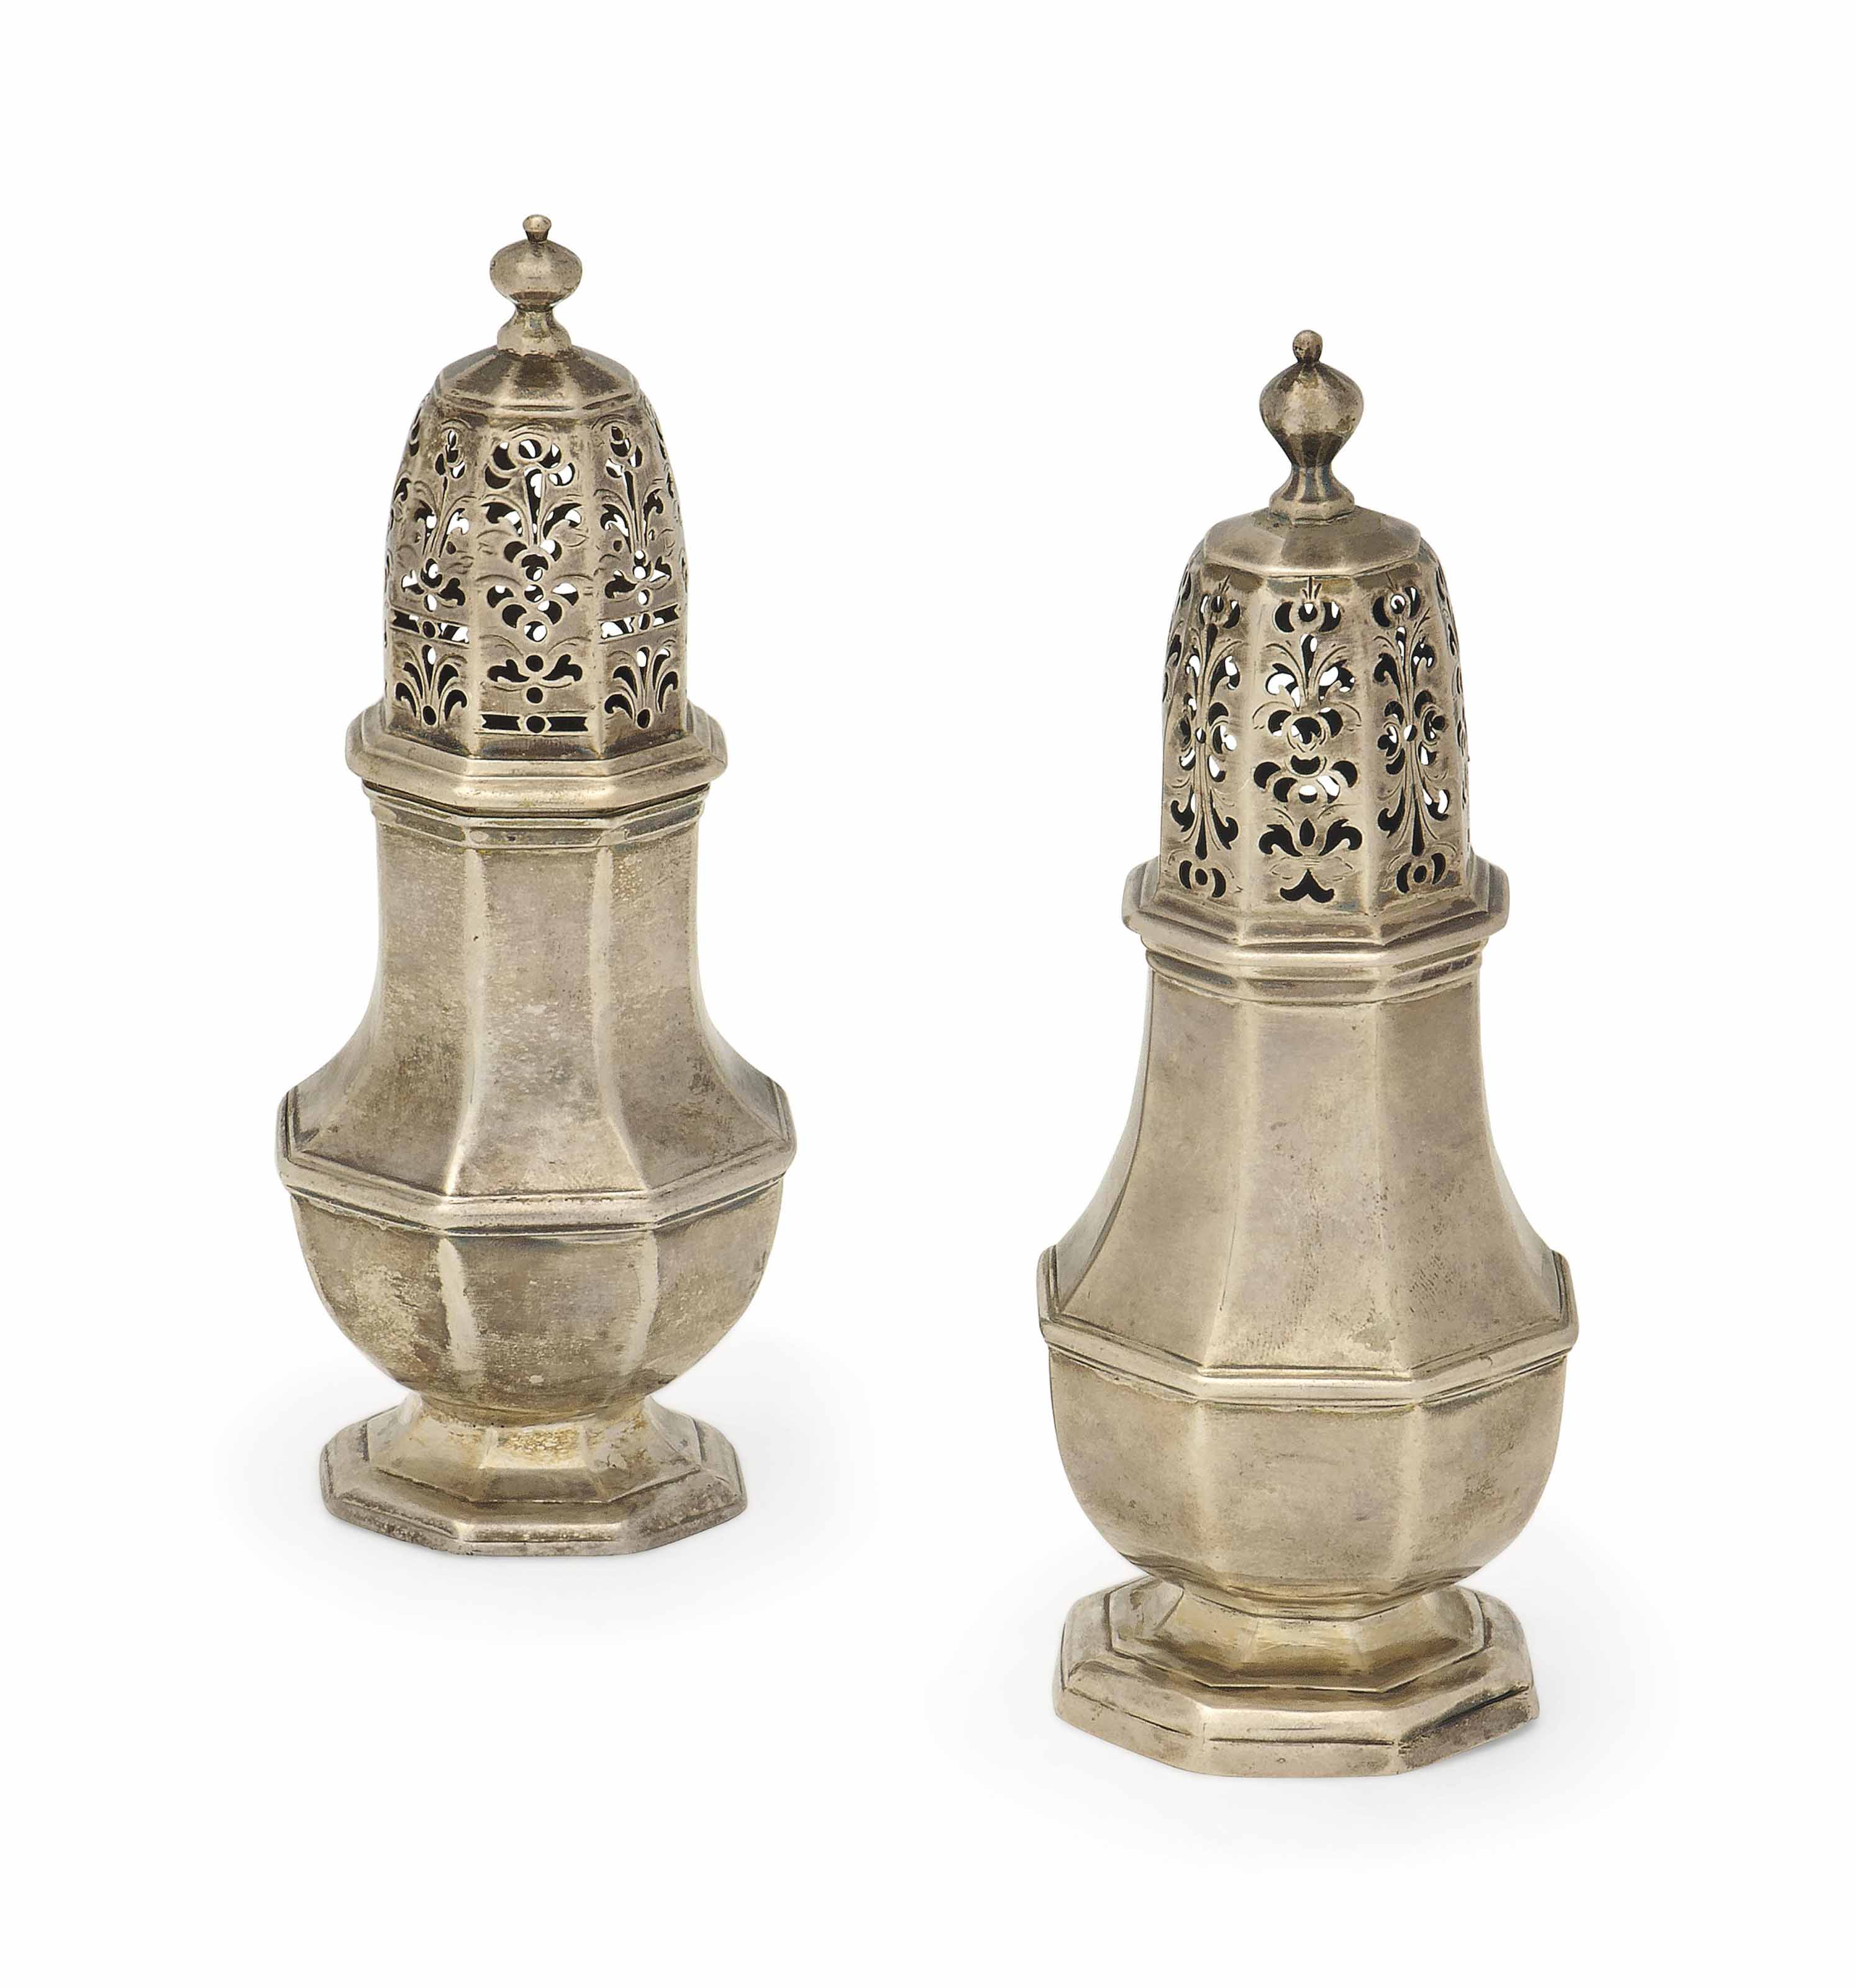 TWO VERY SIMILAR GEORGE I OCTAGONAL SILVER CASTERS